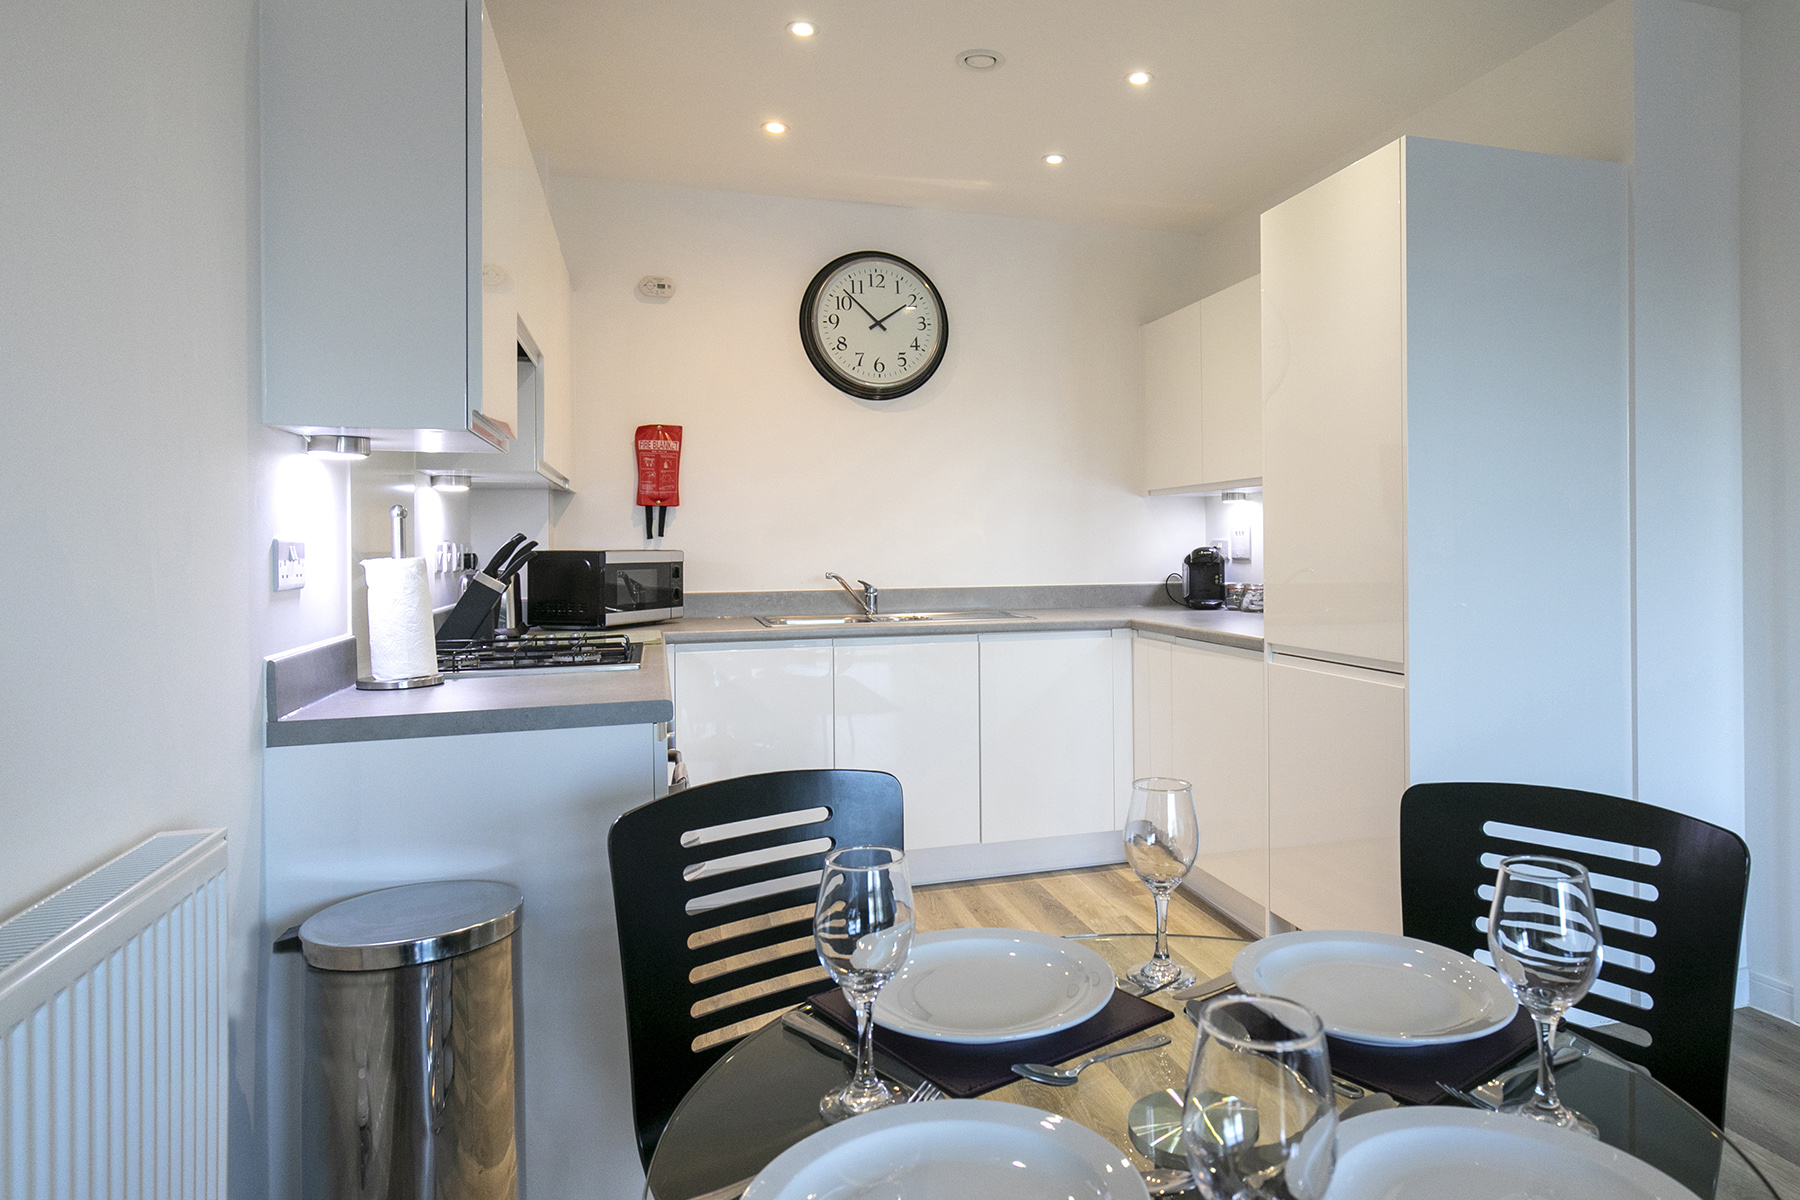 Kitchen at Wey Corner Apartment, Centre, Guildford - Citybase Apartments